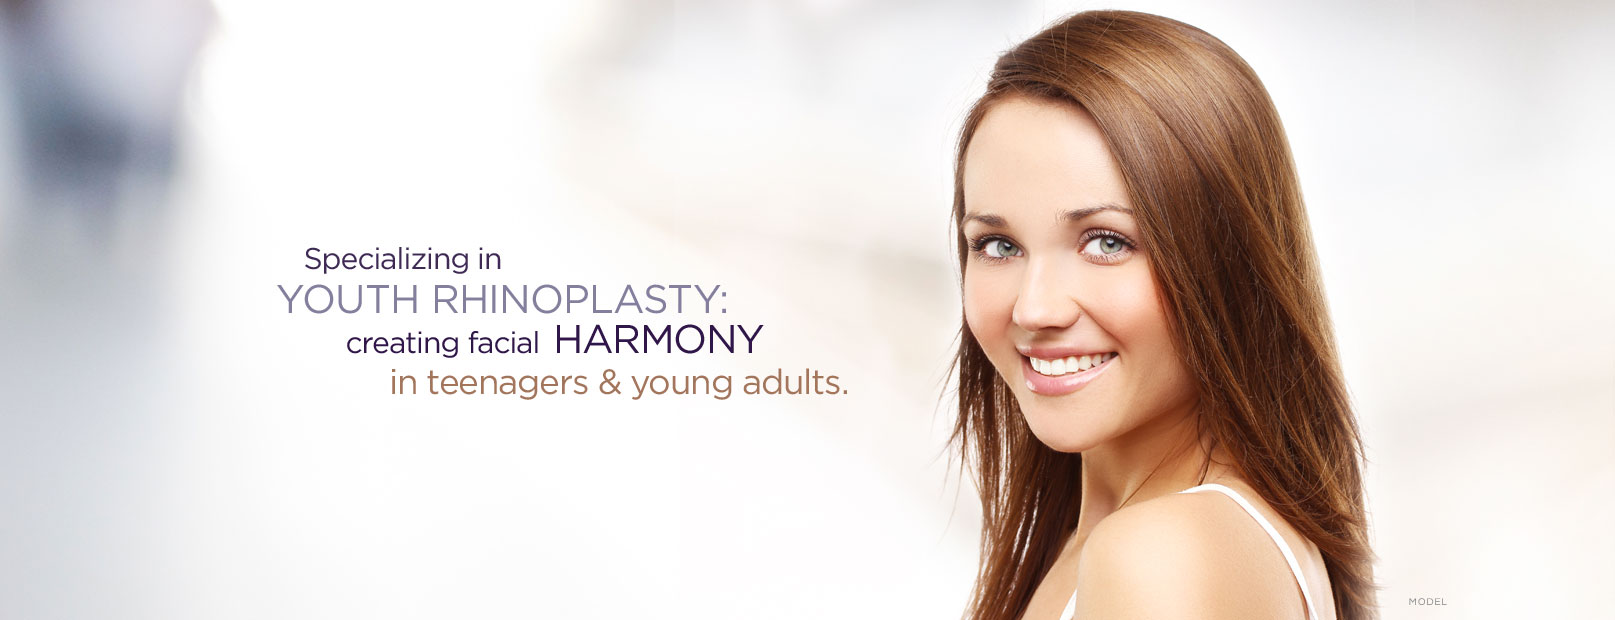 Specializing in Youth Rhinoplasty: creating facial harmoney in teenages & young adults banner toronto dr. adamson